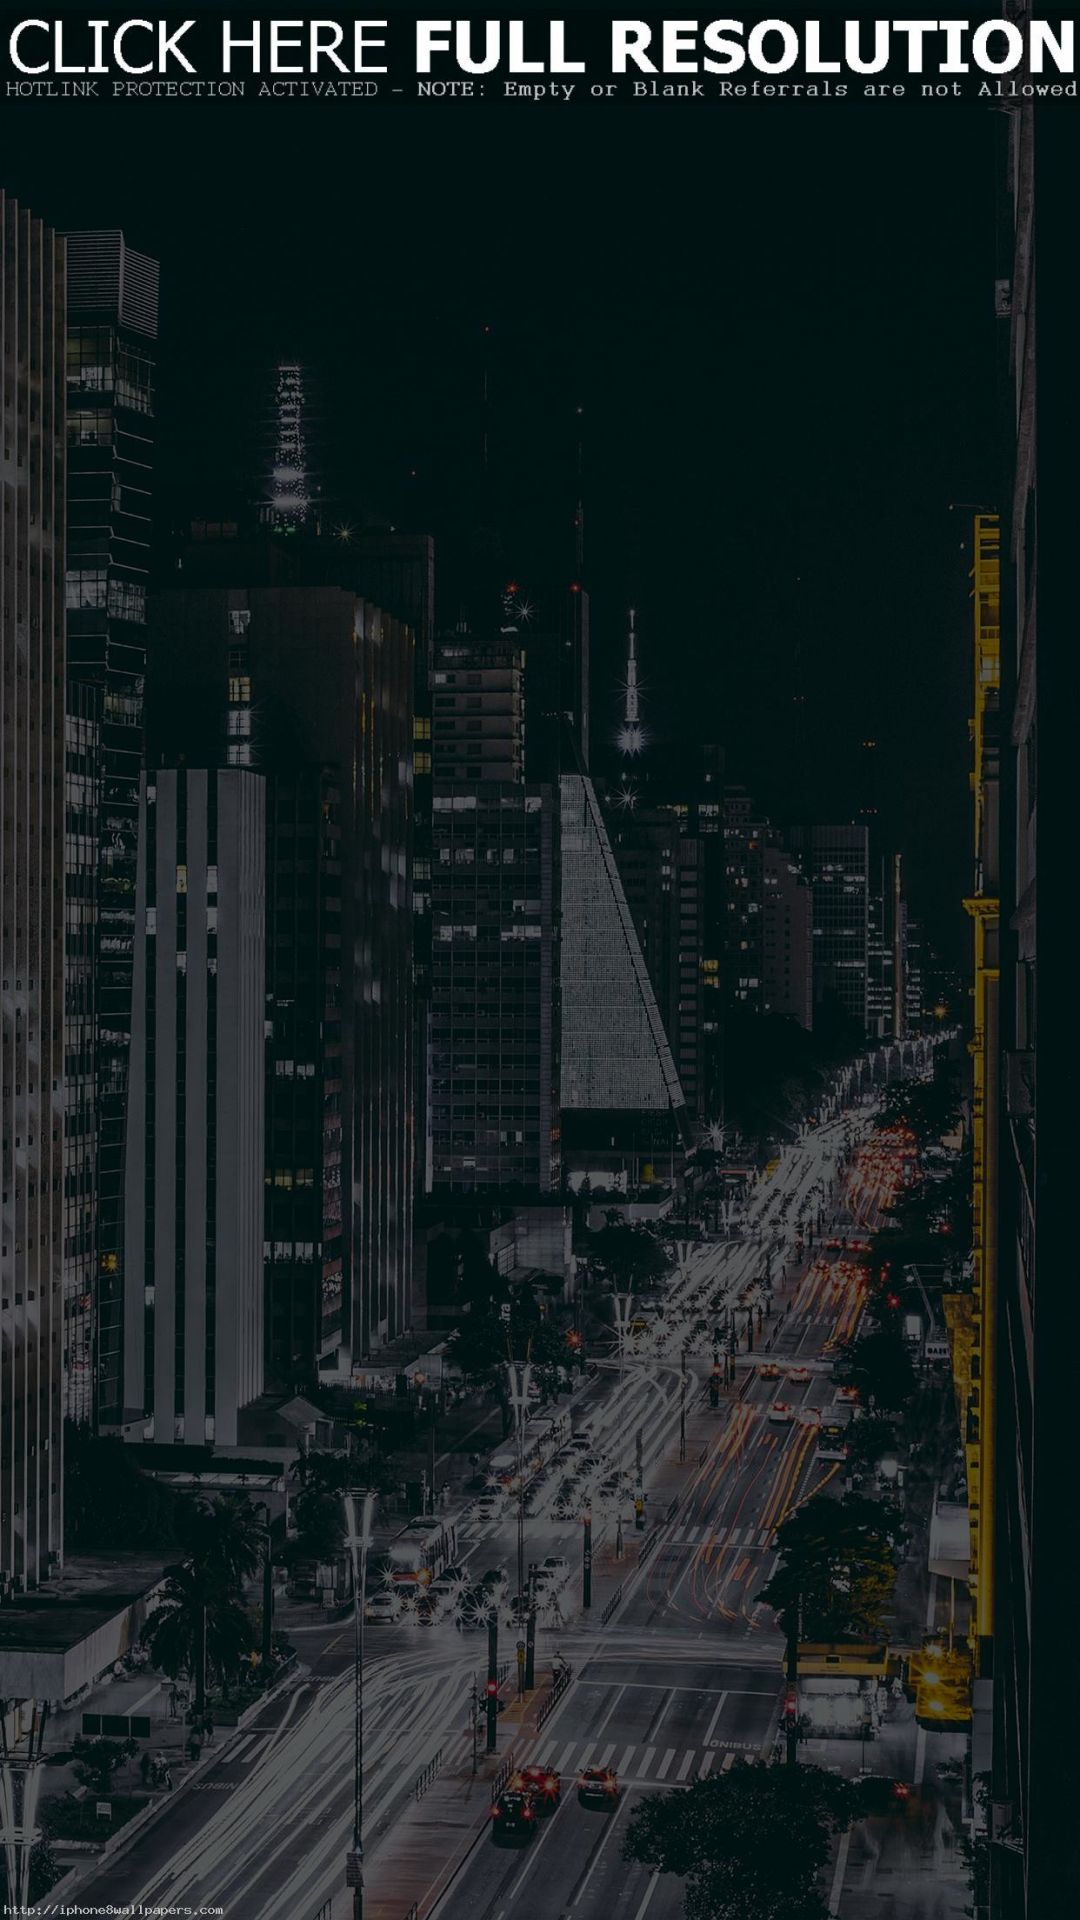 60 Street Wallpaper Hd Night City Android Iphone Desktop Hd Backgrounds Wallpapers 1080p 4k 1242x2208 2021